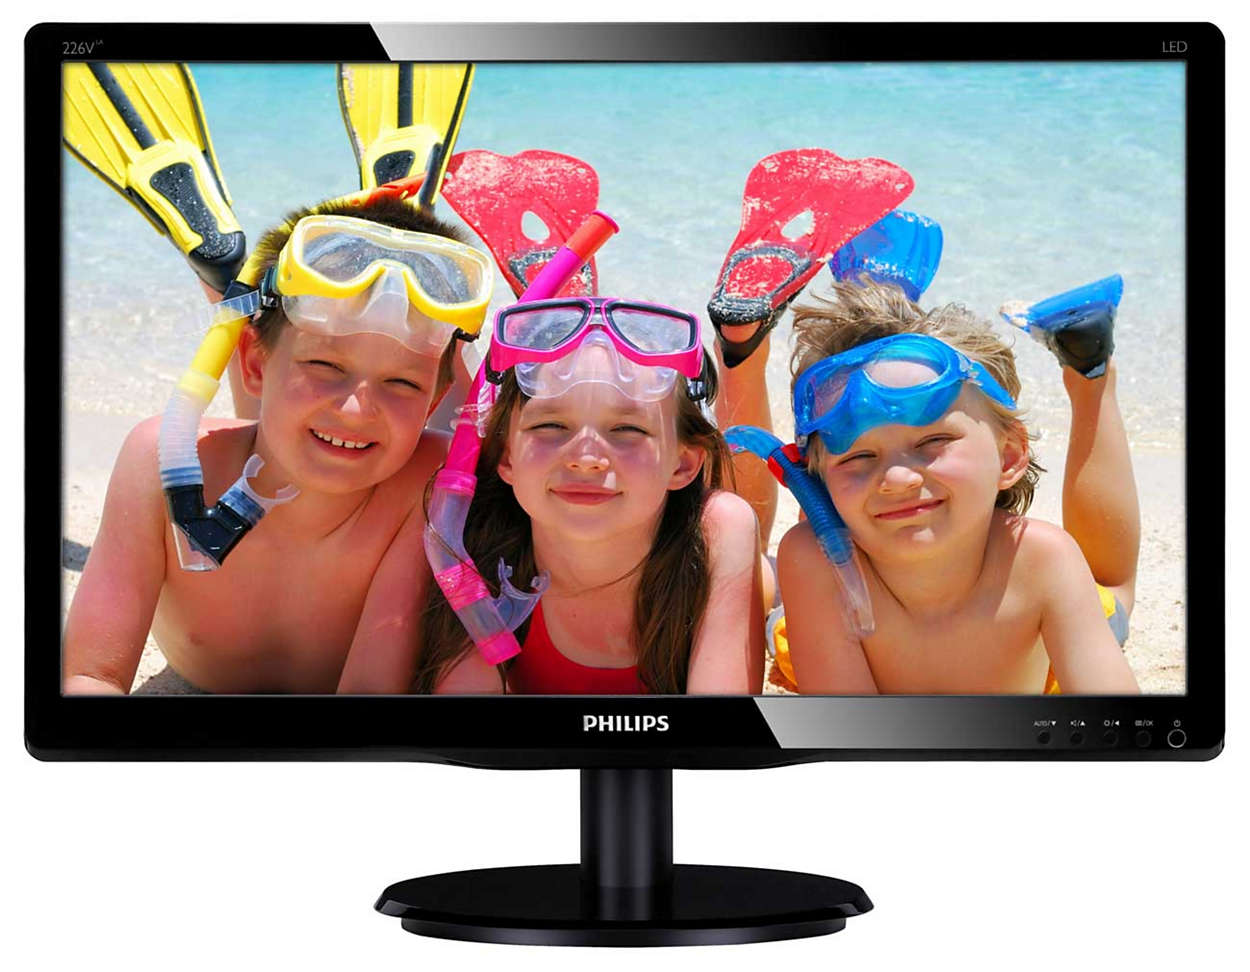 Monitor 22' LED Philips V-Line Full HD HDMI + VGA